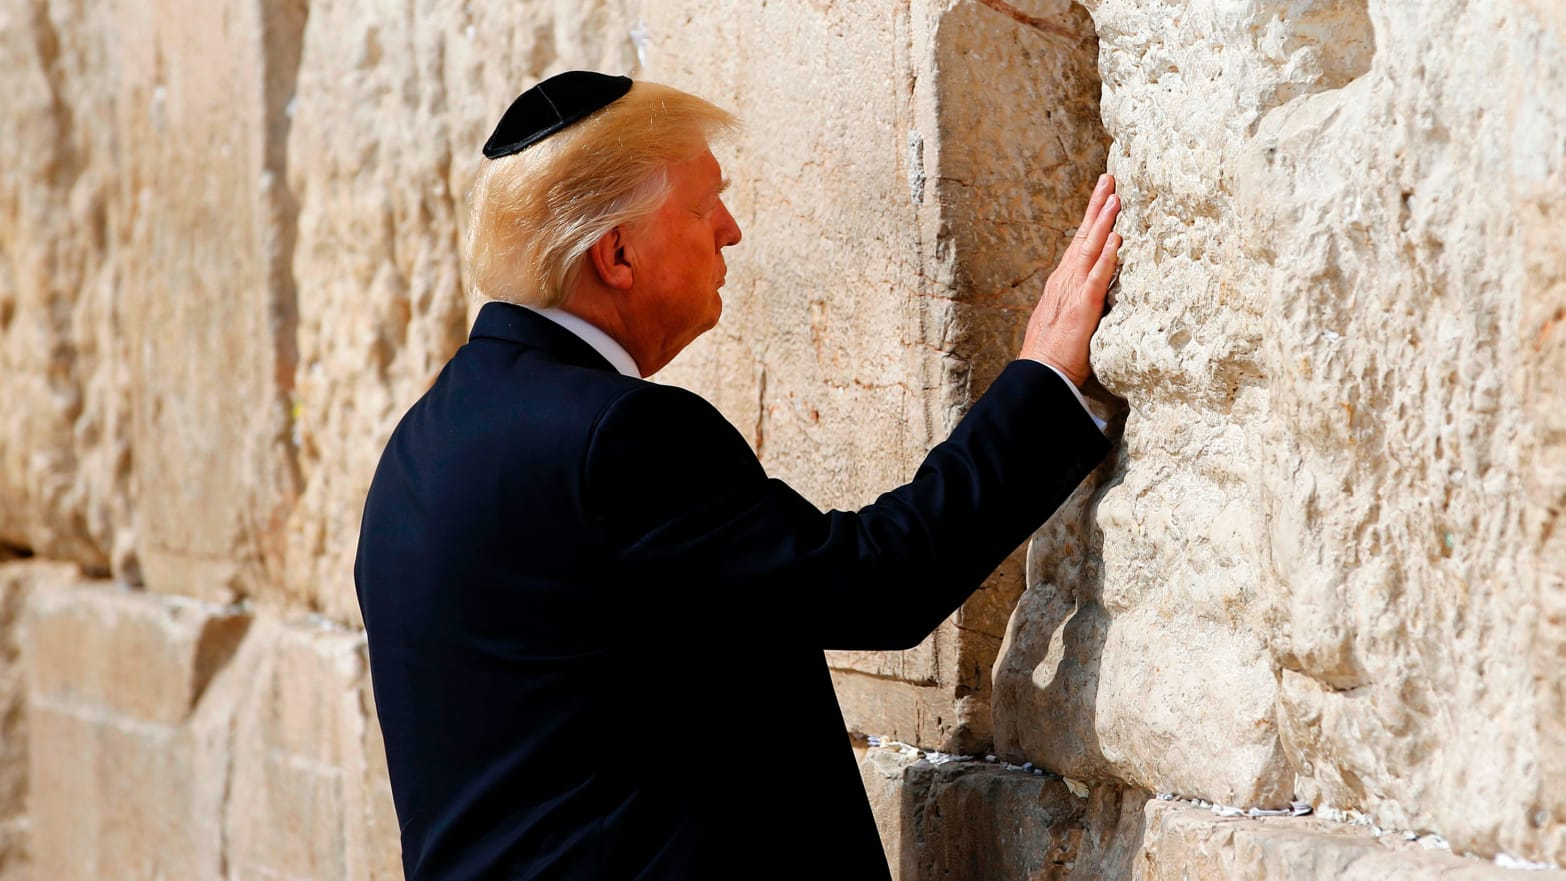 Trump Says He's King of the Jews. The Bible Says Otherwise.